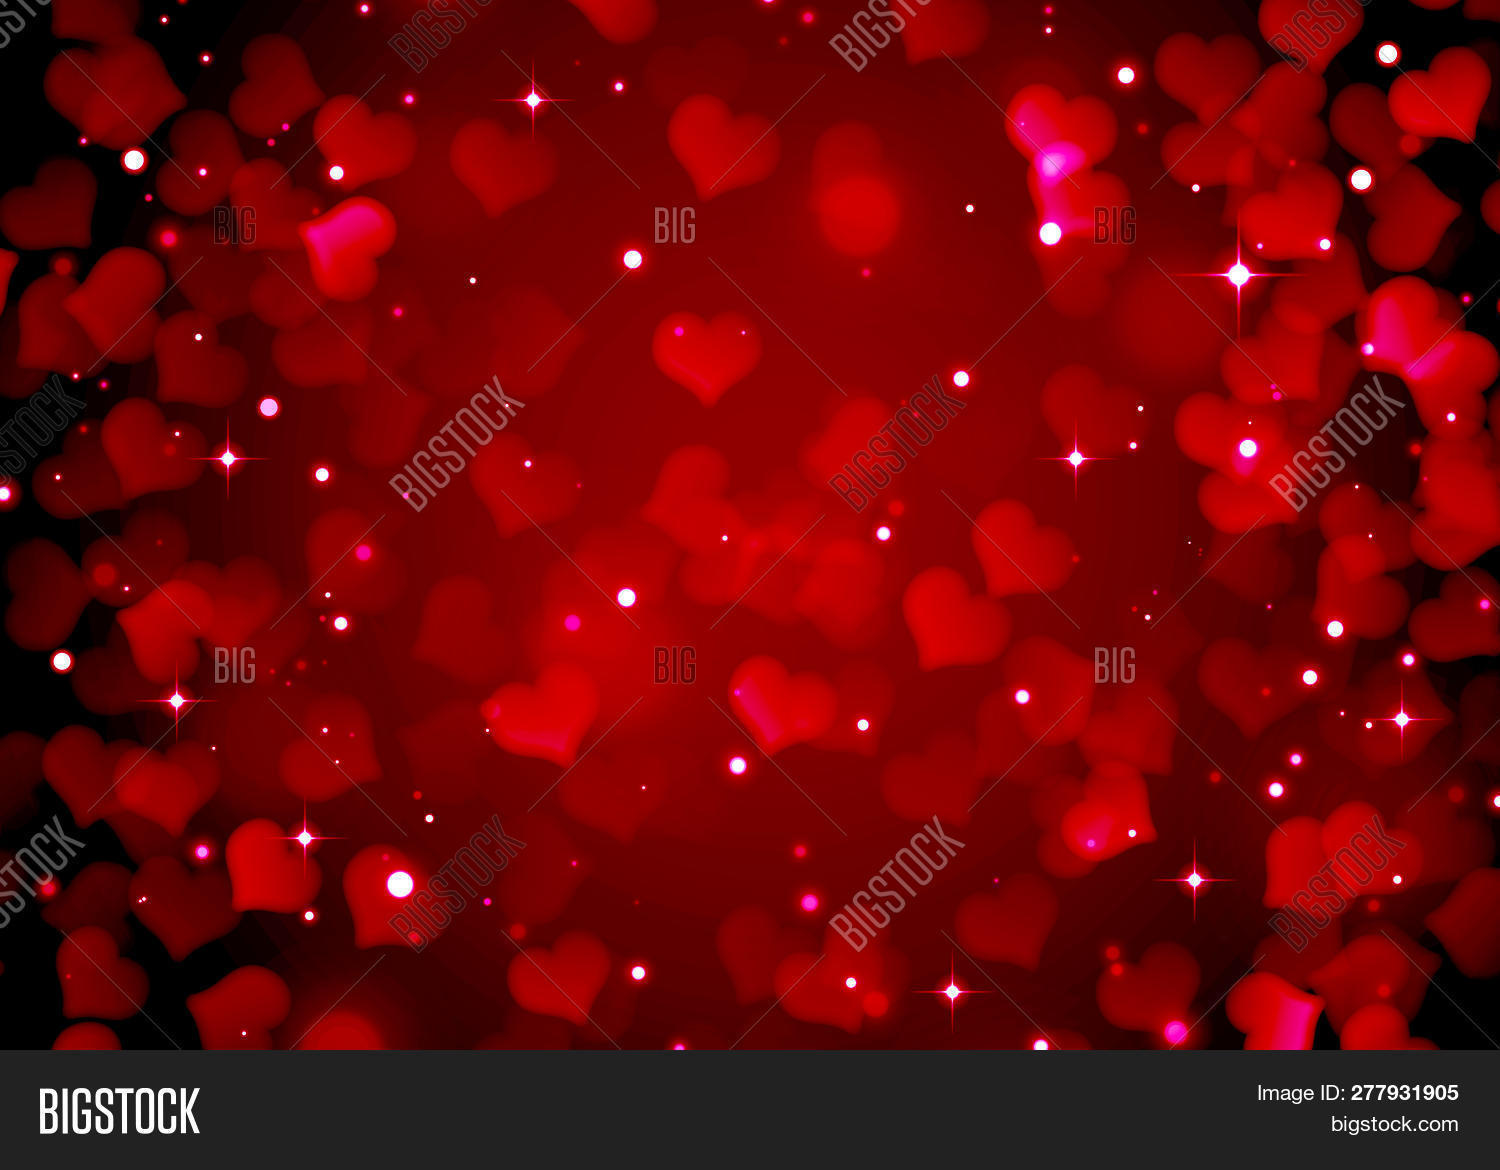 Abstract,Valentine,Valentine's,Wallpaper,and,art,backdrop,background,beautiful,blurry,bokeh,bright,card,celebration,color,day,decoration,design,festive,heart,holiday,illustration,love,pattern,pink,red,romance,romantic,shape,shiny,sparkle,texture,wall,wedding